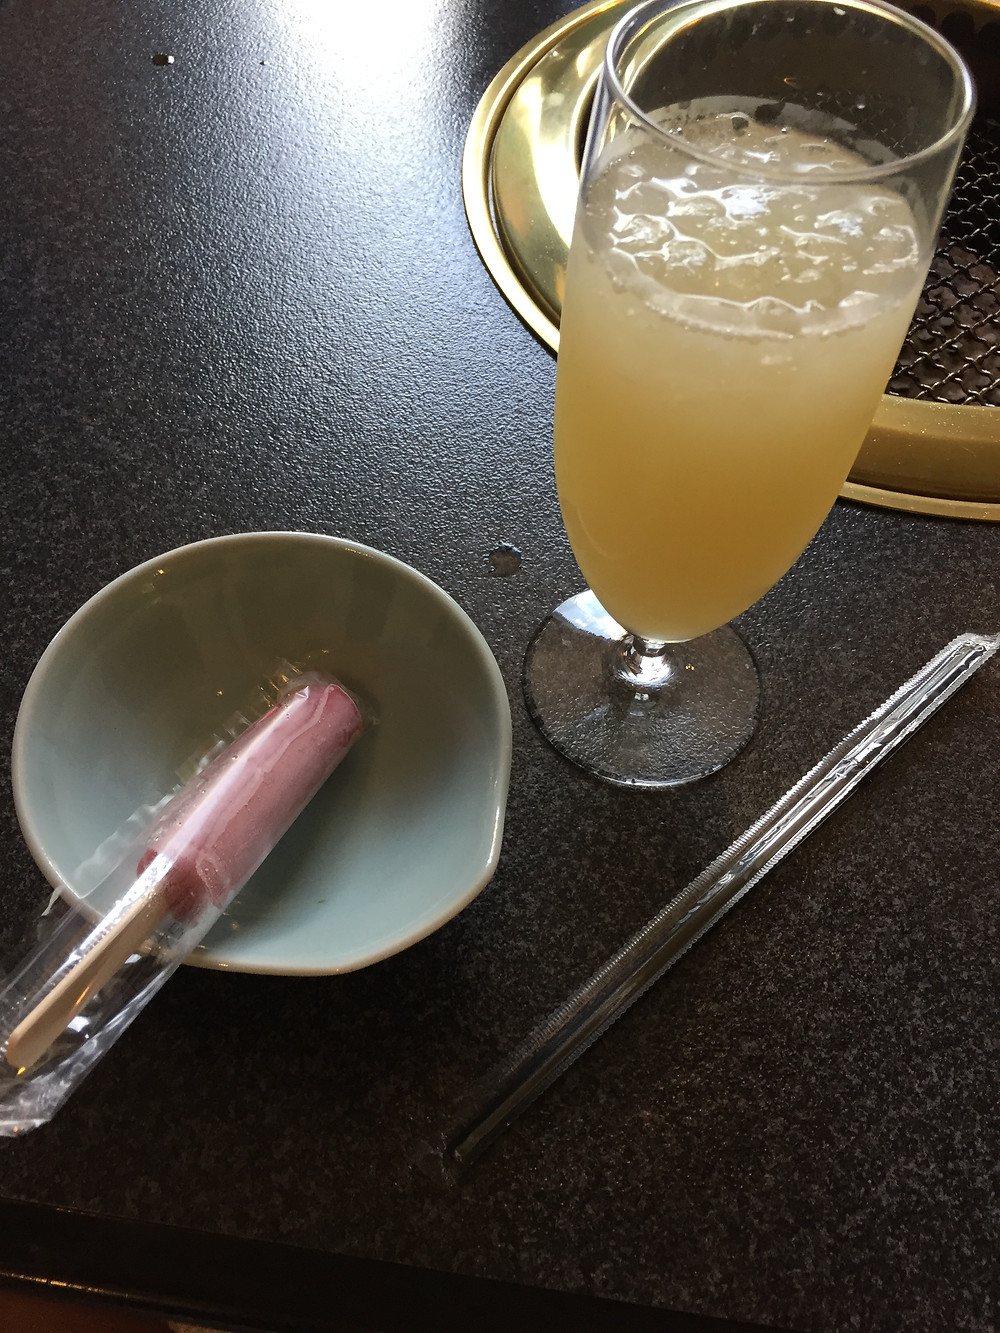 Service drink with a popsicle